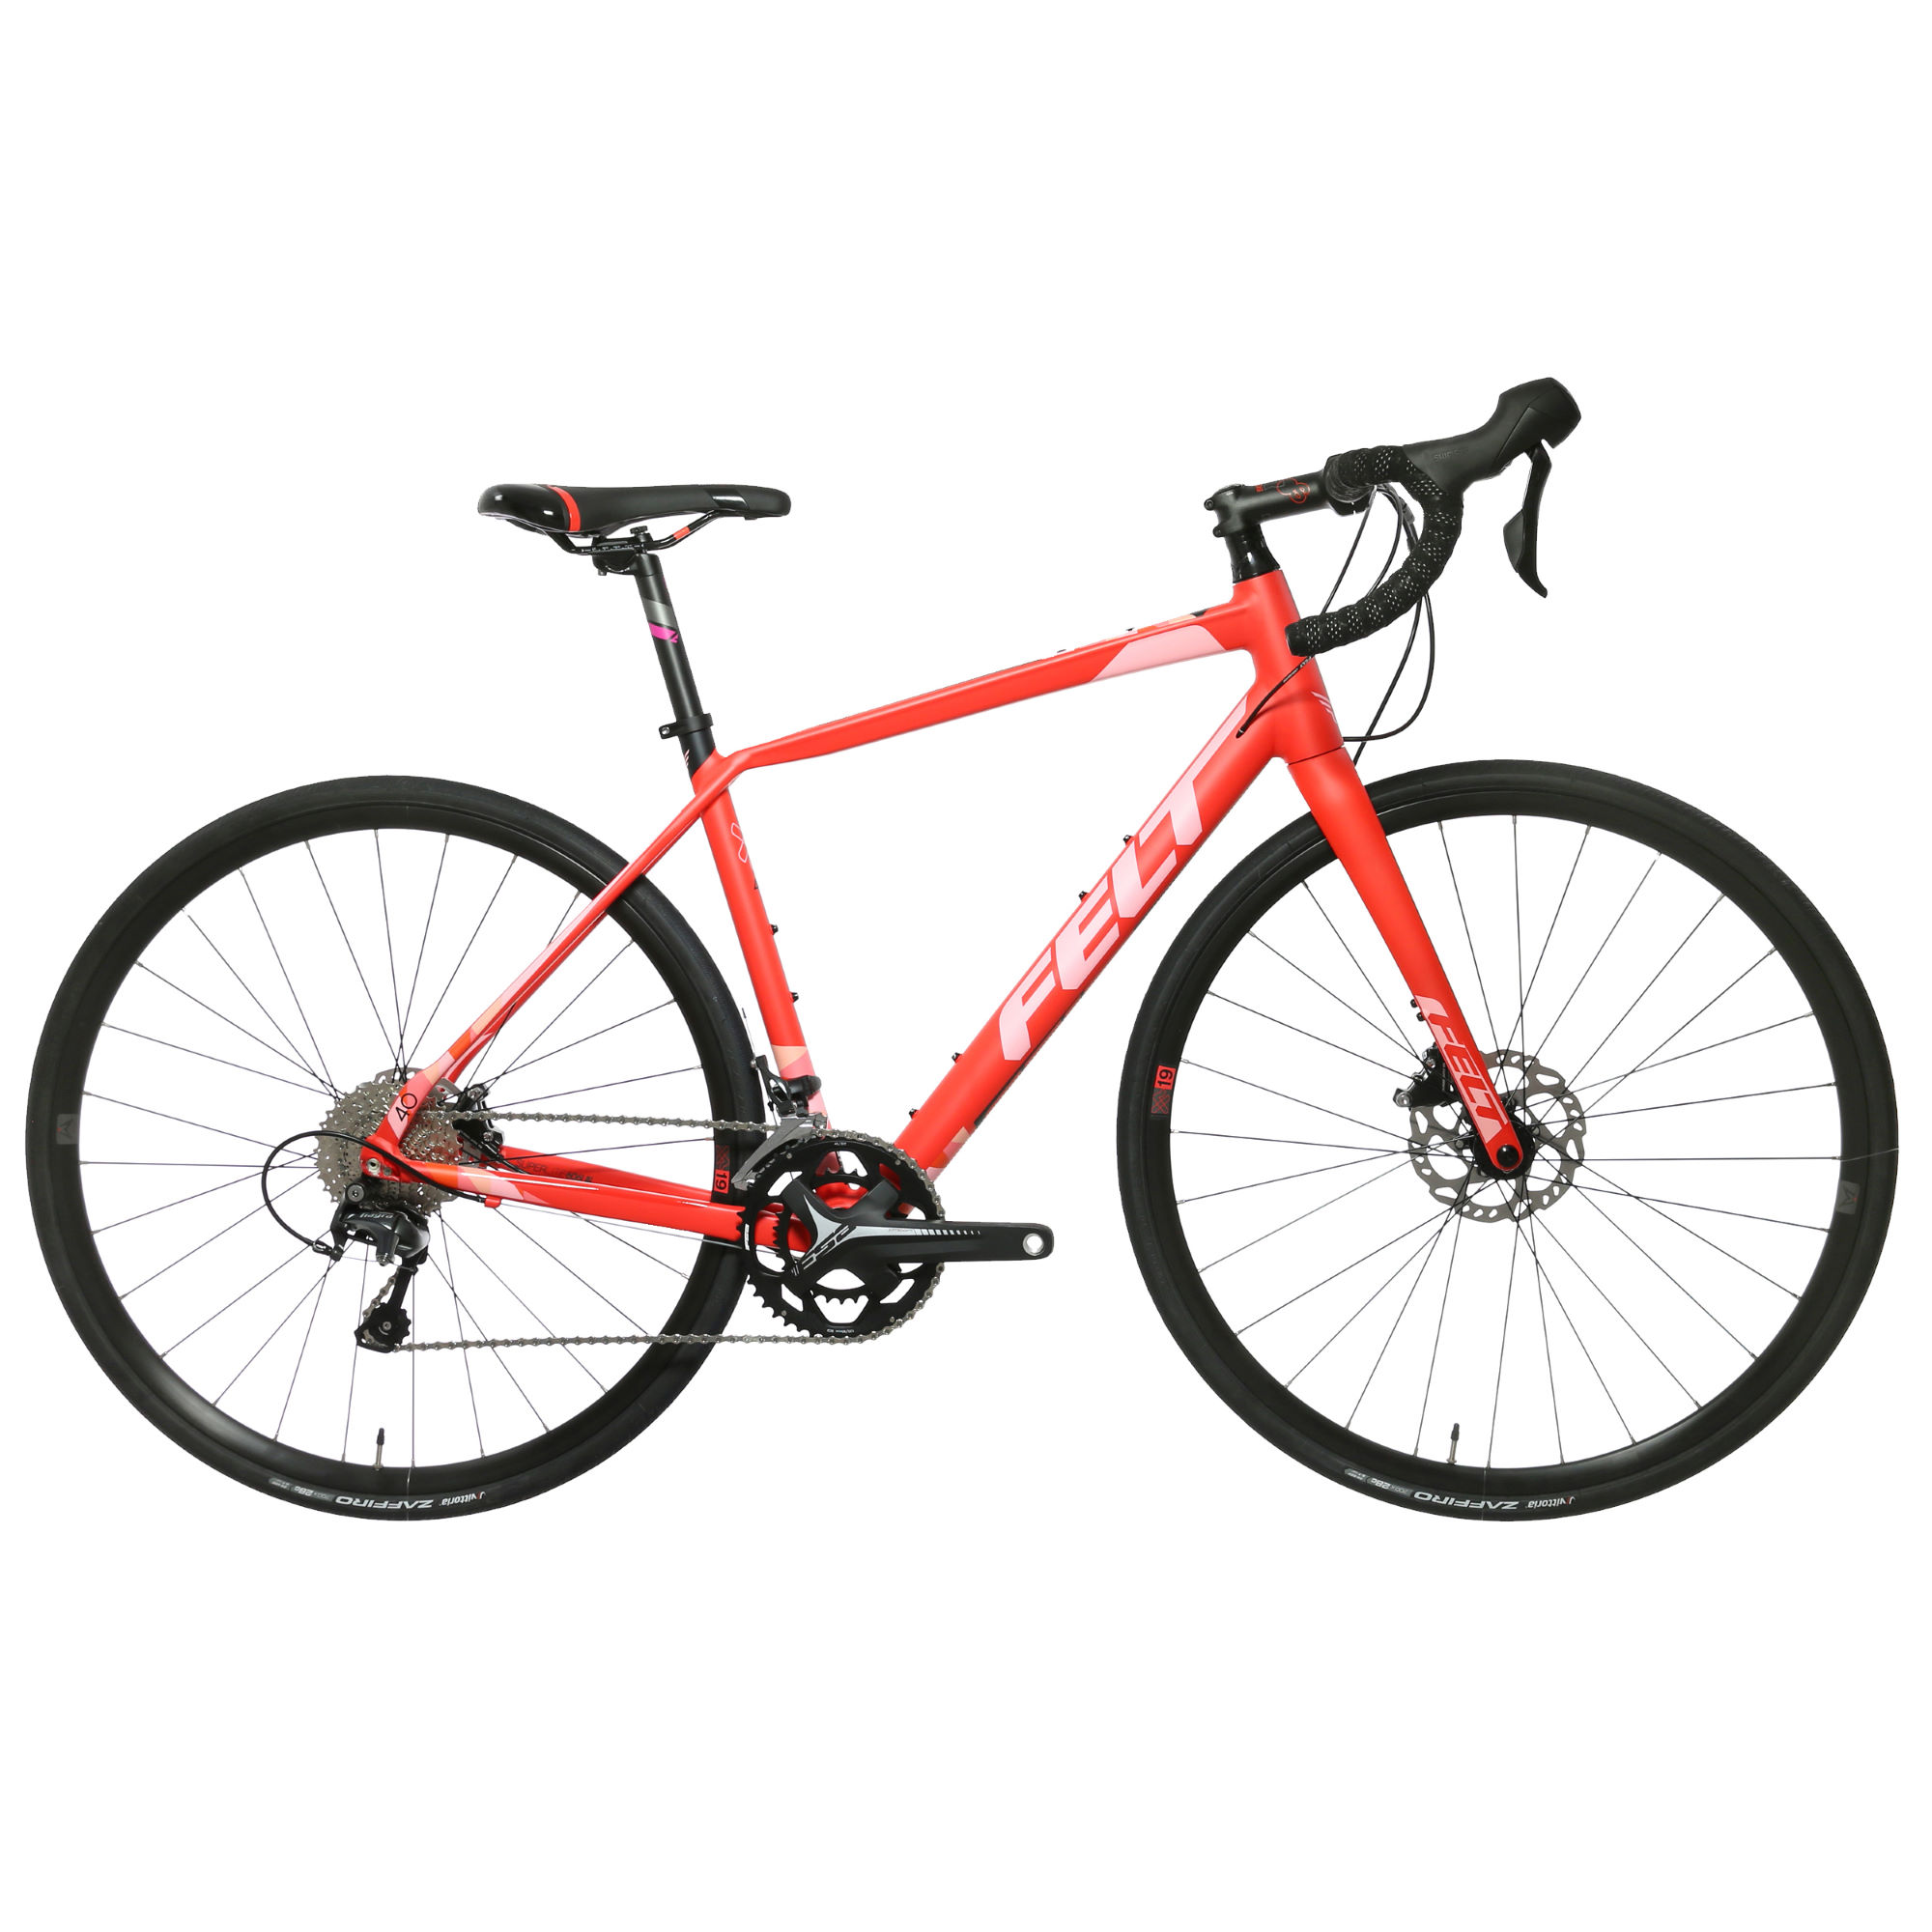 More about wiggle. The range of equipment, accessories and gear on offer at wiggle is unbeatable. For the humble cyclist as well as the pro - here you can find the best bikes to enhance your performance and it doesn't stop there.